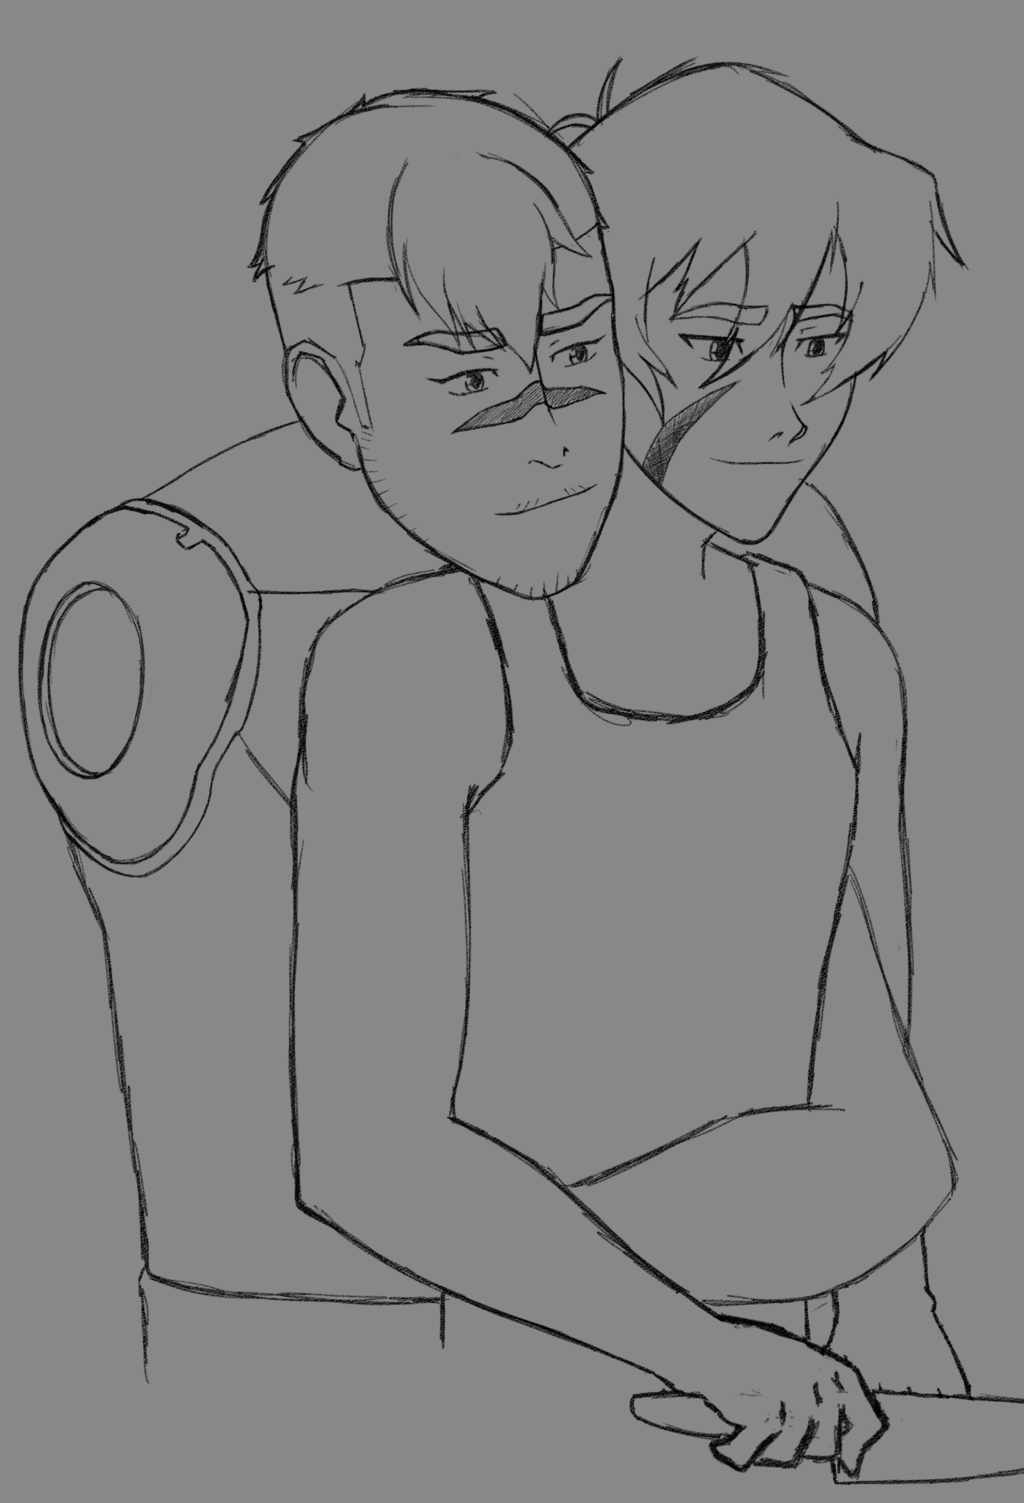 Most recent image: sheith